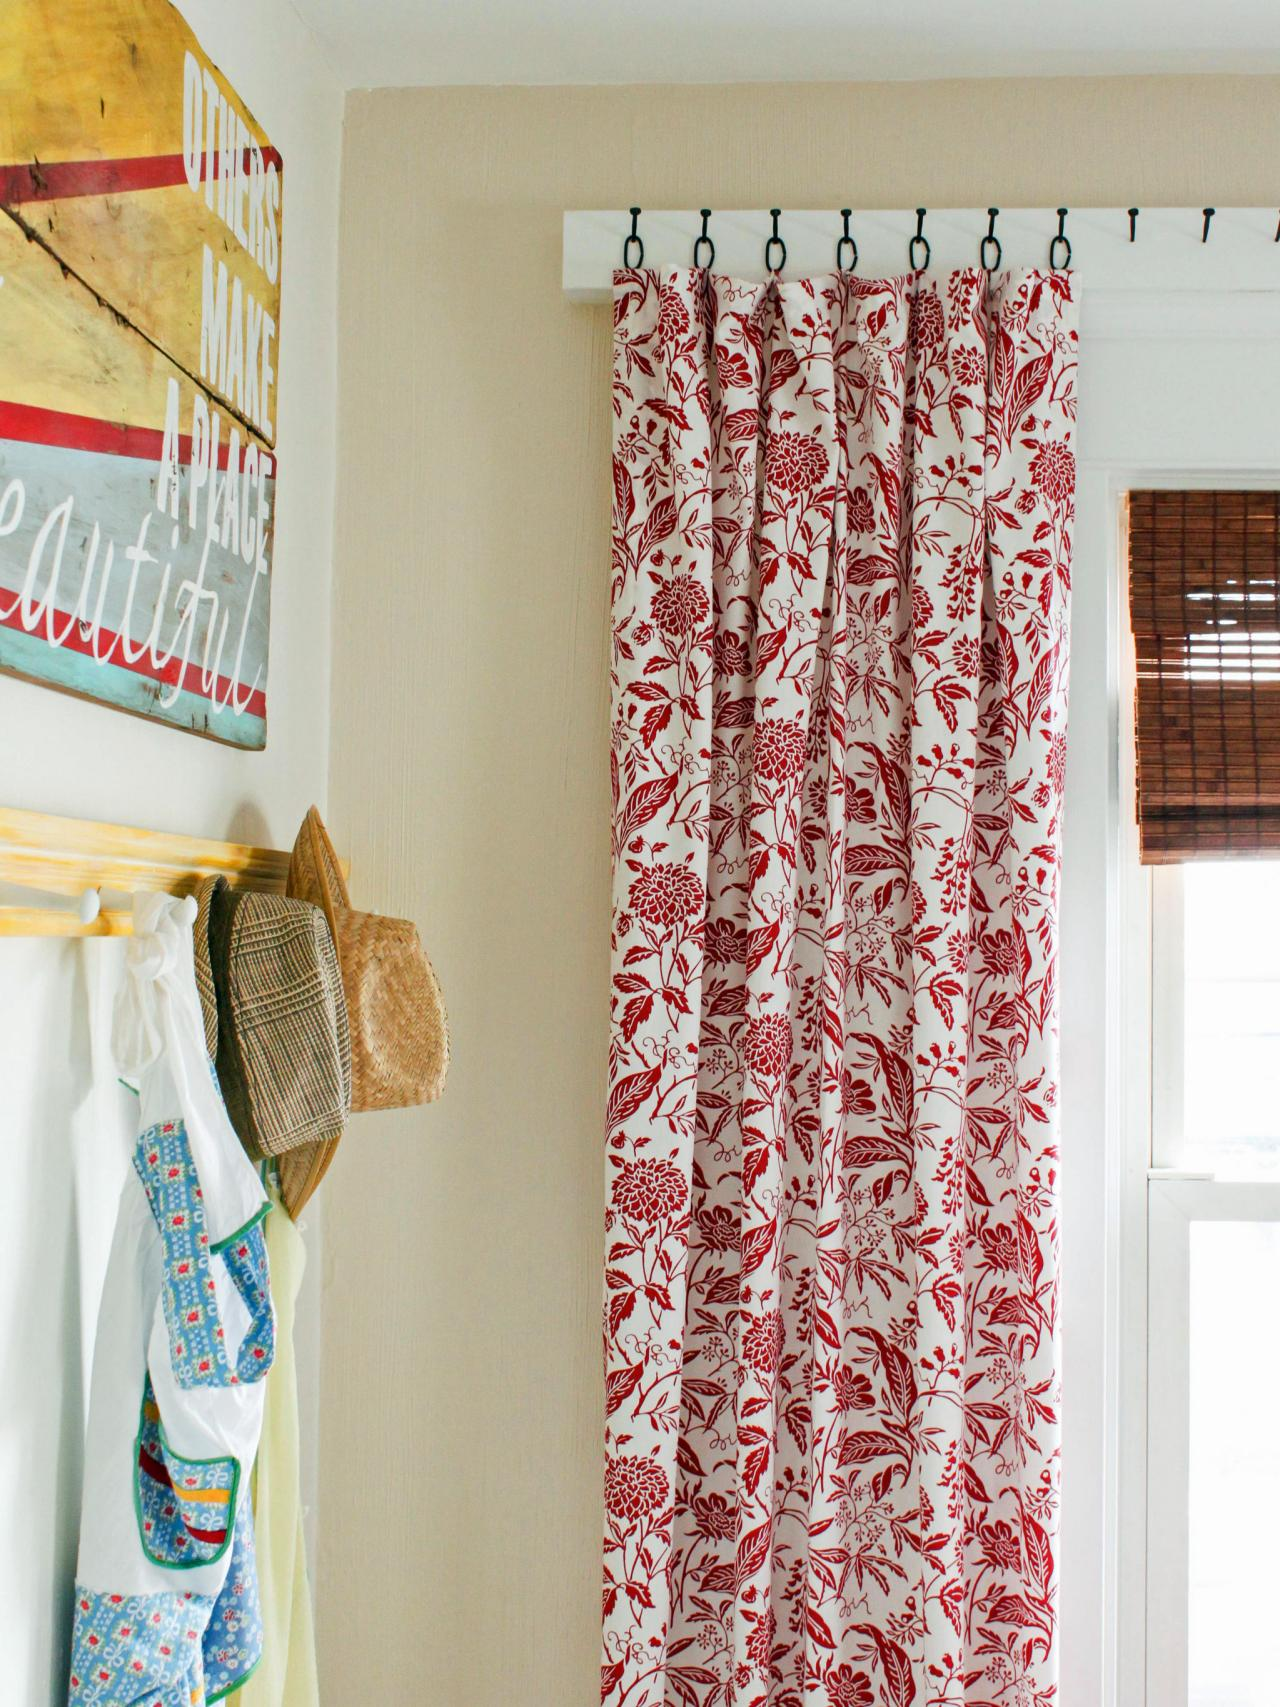 Uncategorized Laundry Room Curtains laundry room curtains pictures options tips ideas hgtv coffee sack curtains